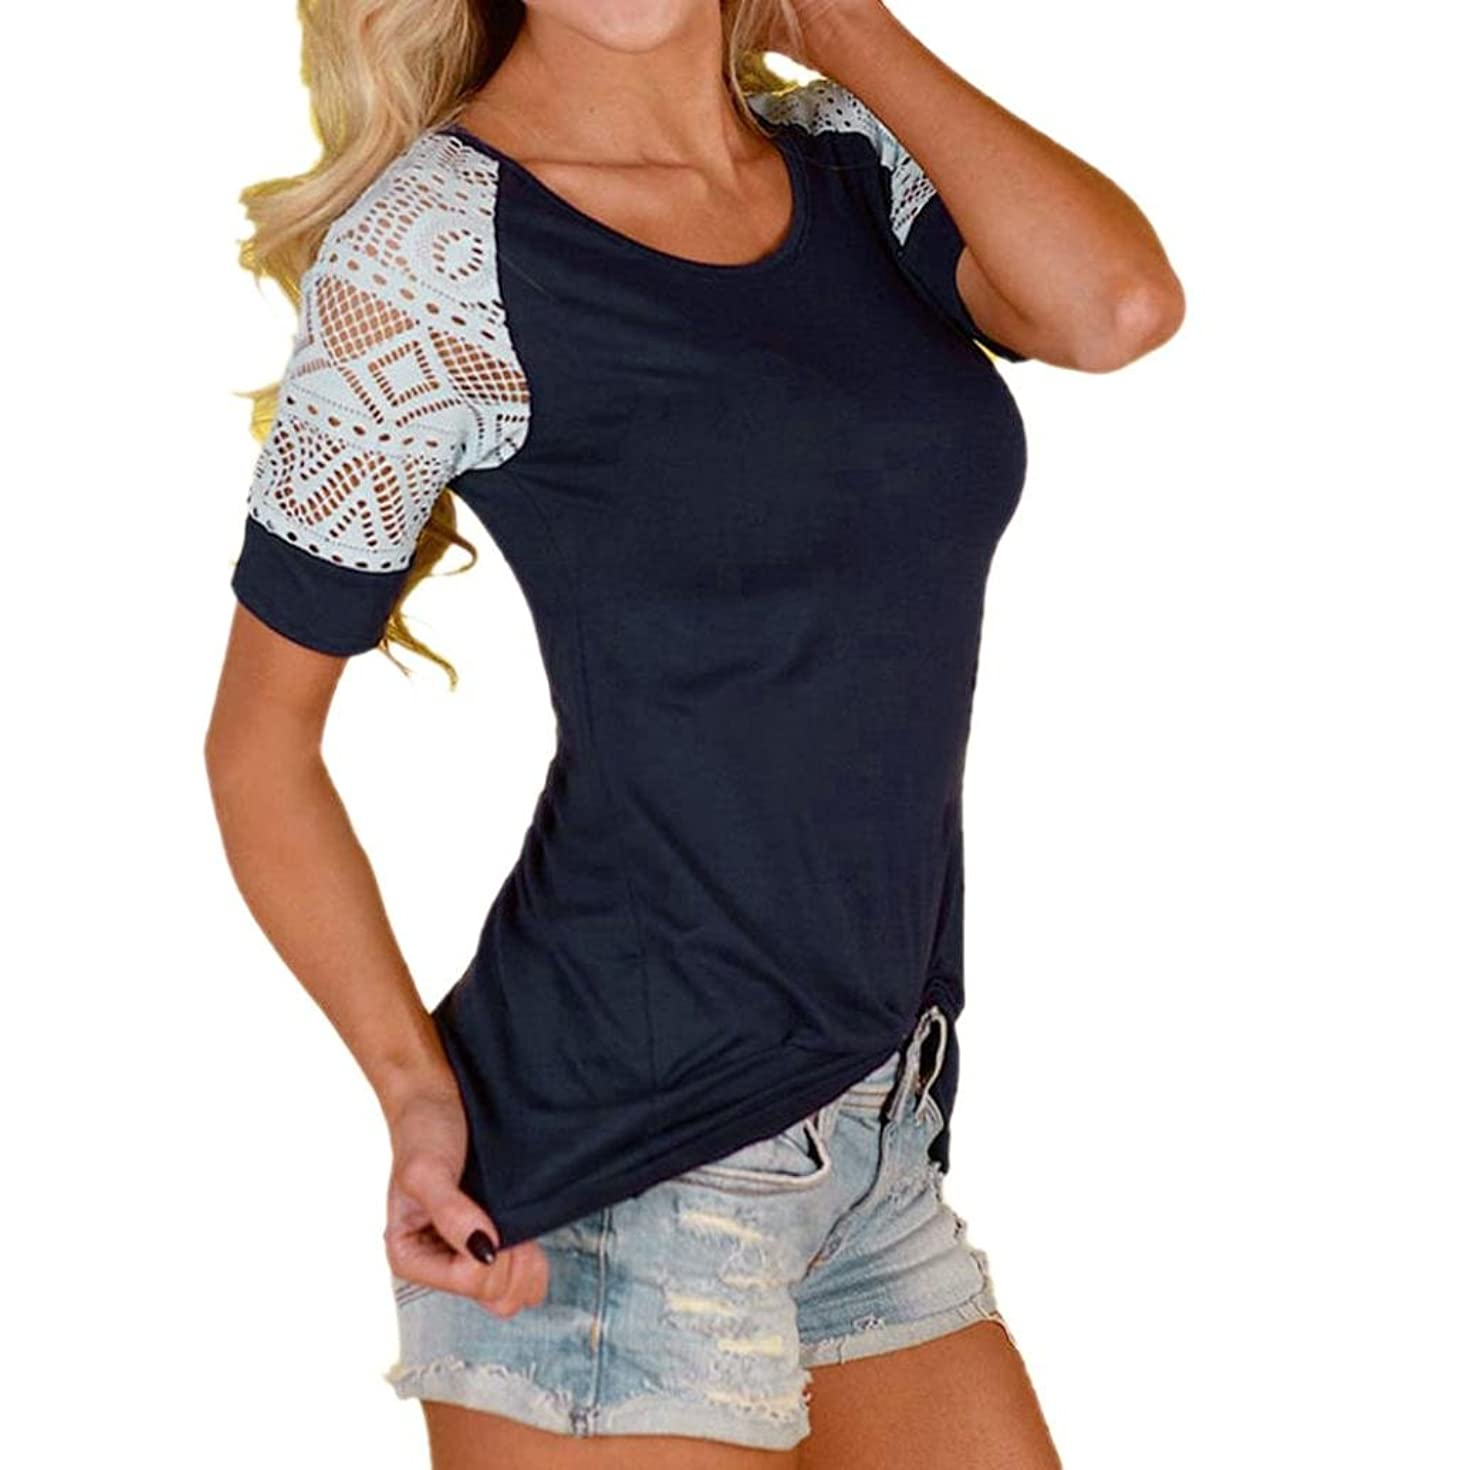 Pengy Women Blouse Tops Lace Shirt Tee Short Sleeve